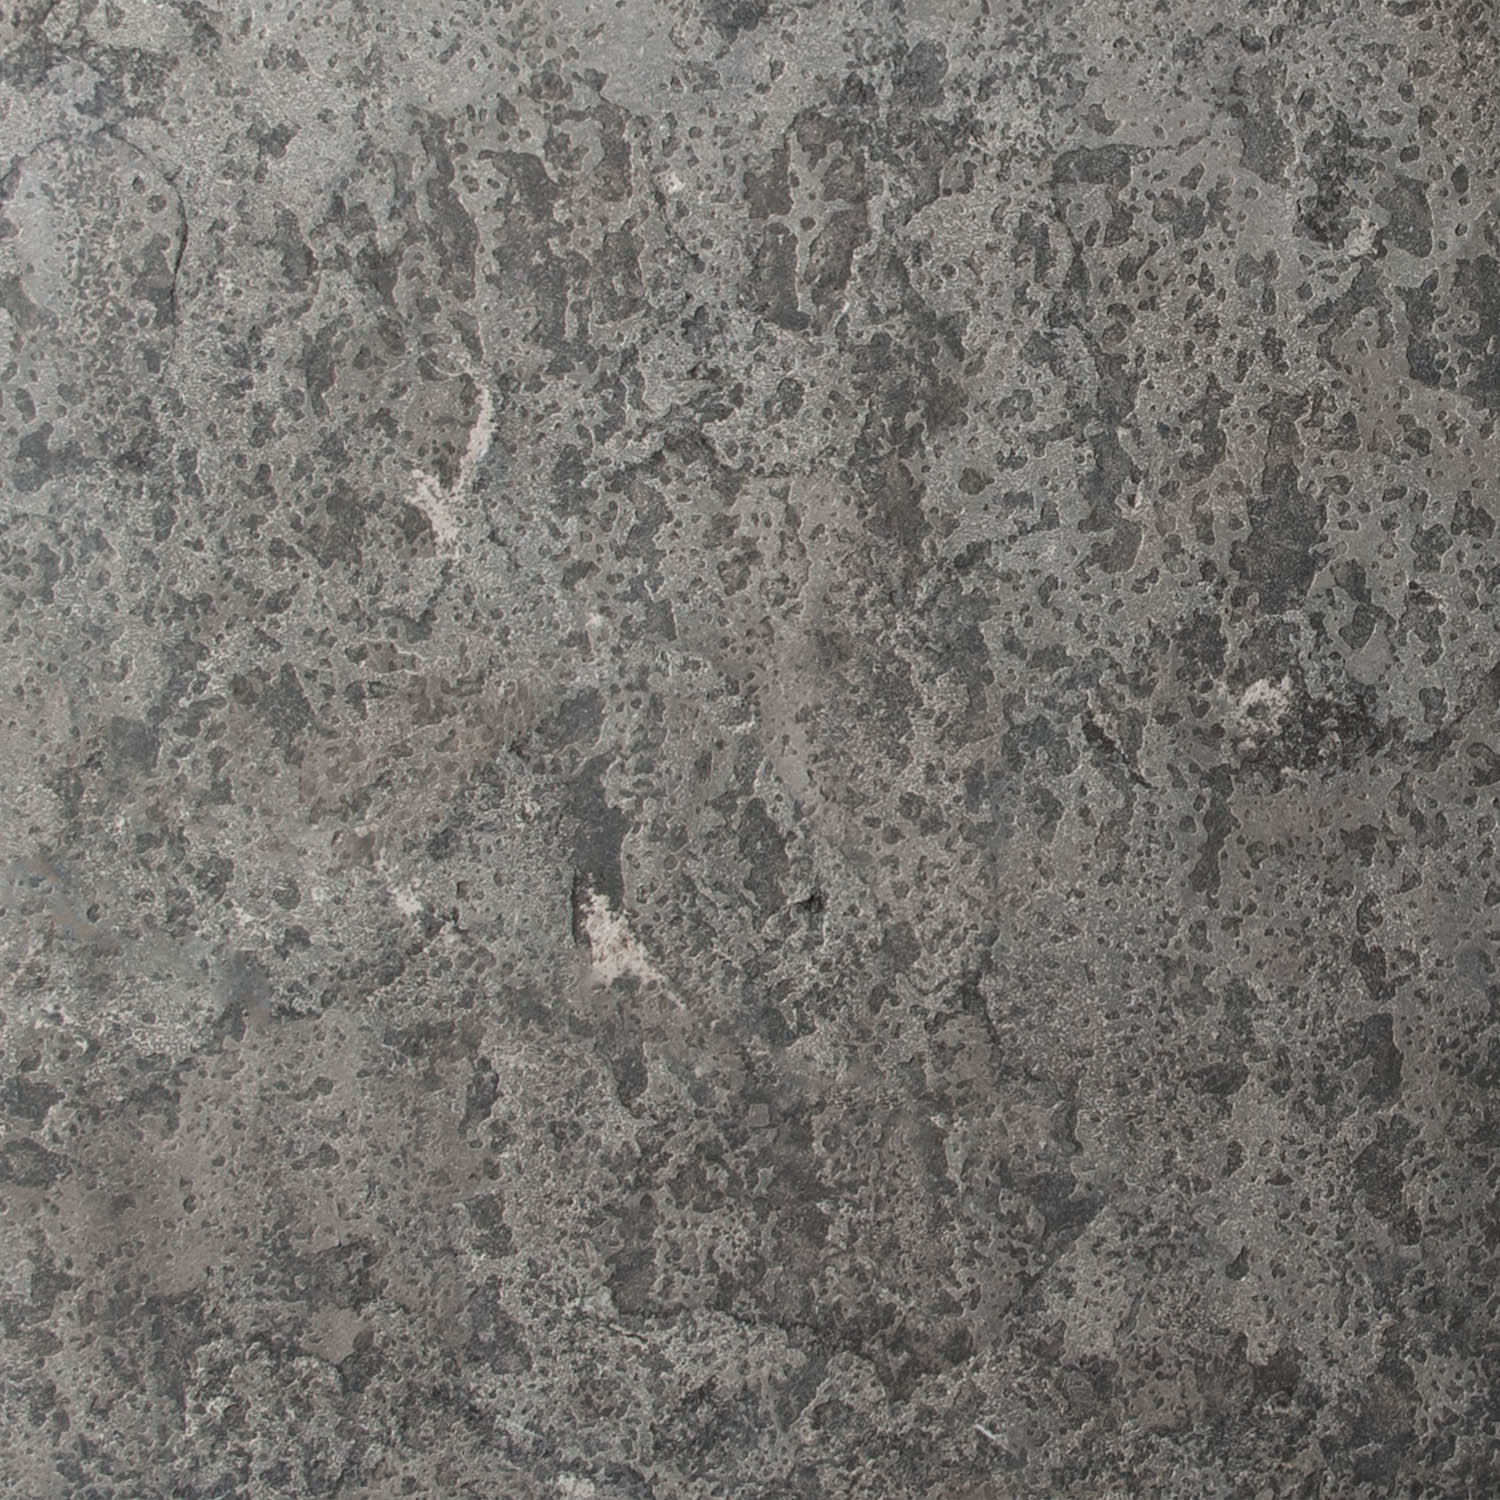 India Silver Grey guillotined step swatch